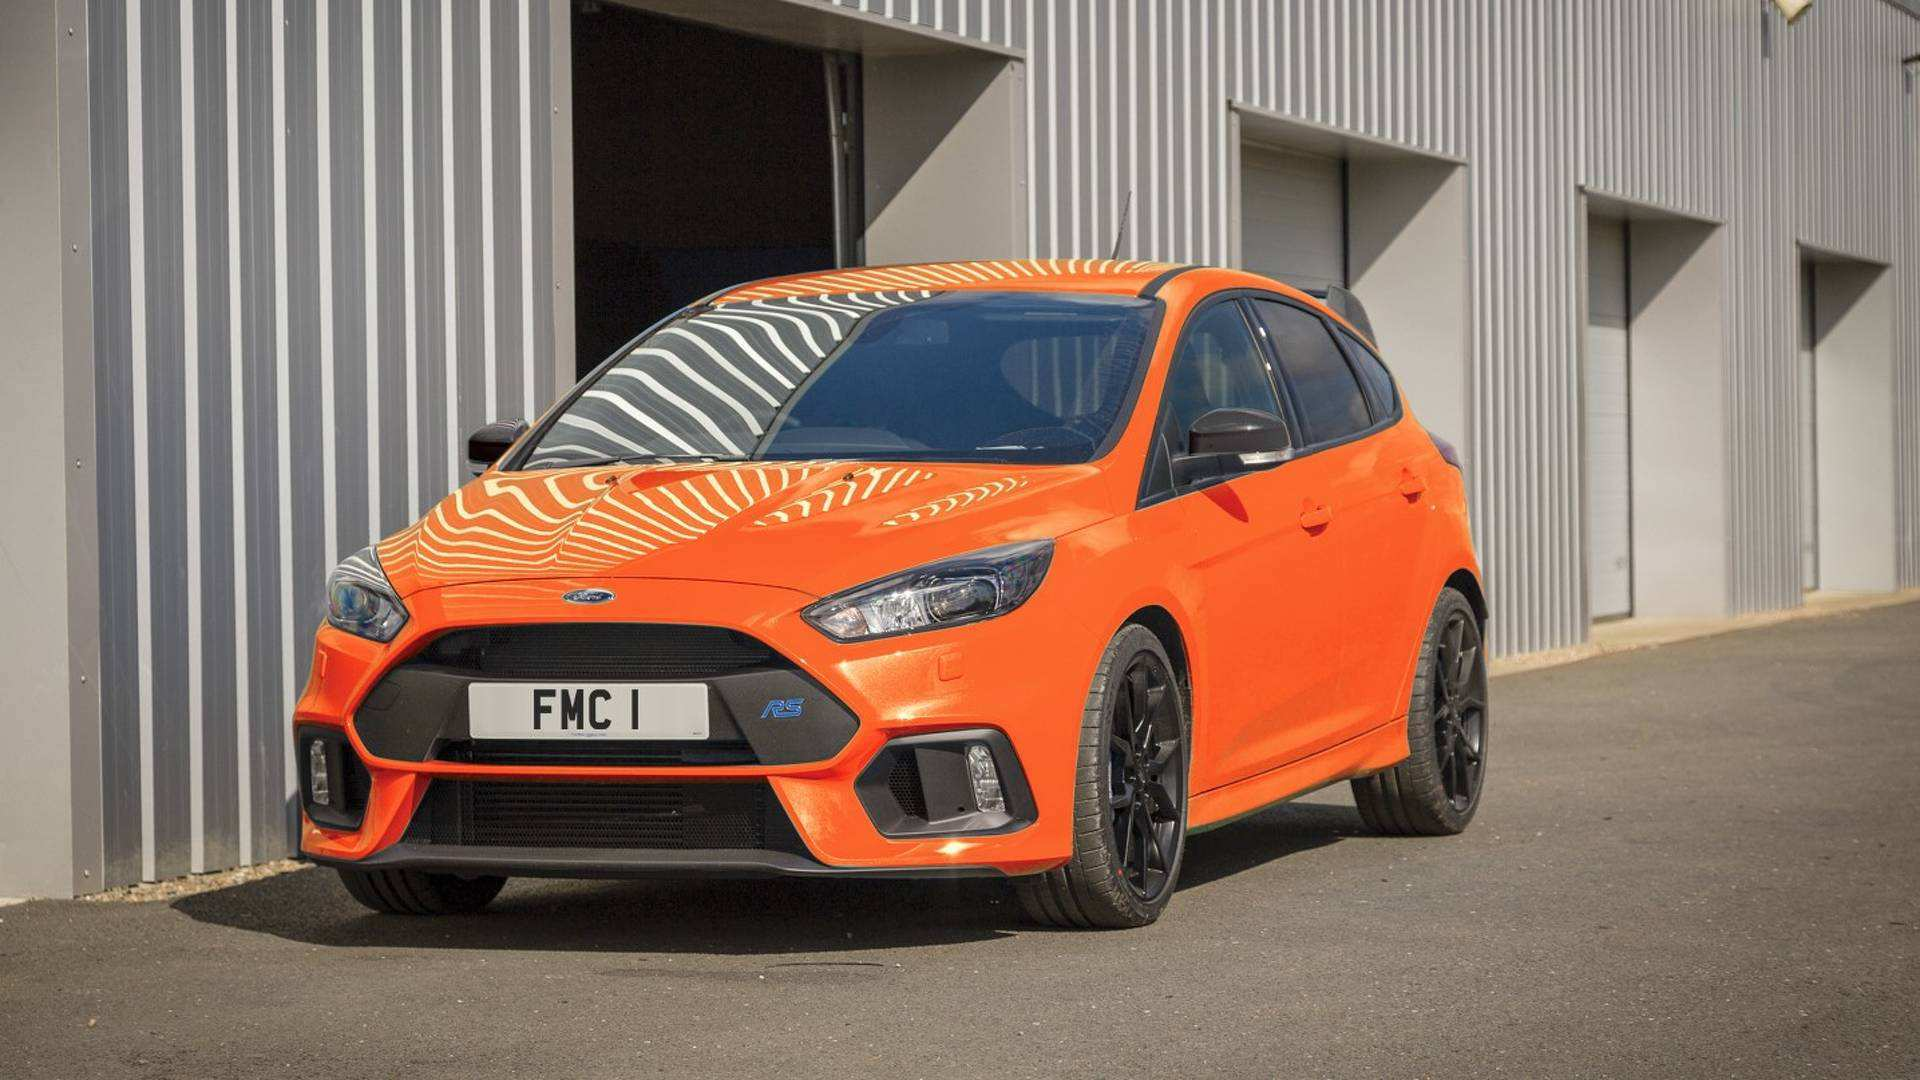 90 The Best 2020 Ford Focus RS New Model And Performance